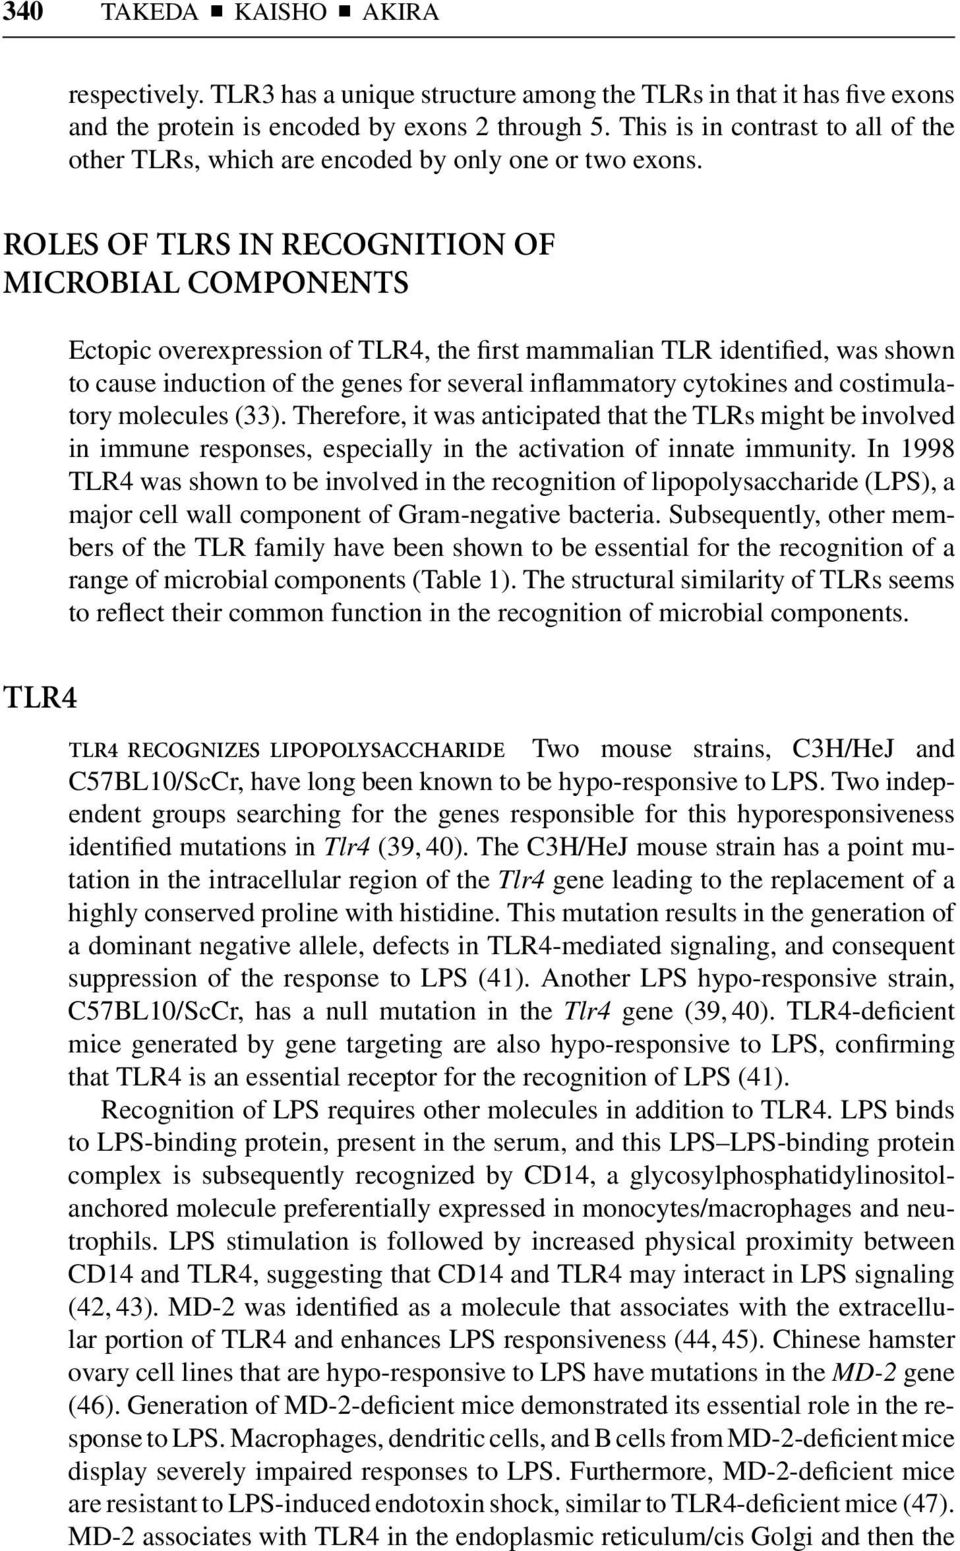 ROLES OF TLRS IN RECOGNITION OF MICROBIAL COMPONENTS Ectopic overexpression of TLR4, the first mammalian TLR identified, was shown to cause induction of the genes for several inflammatory cytokines